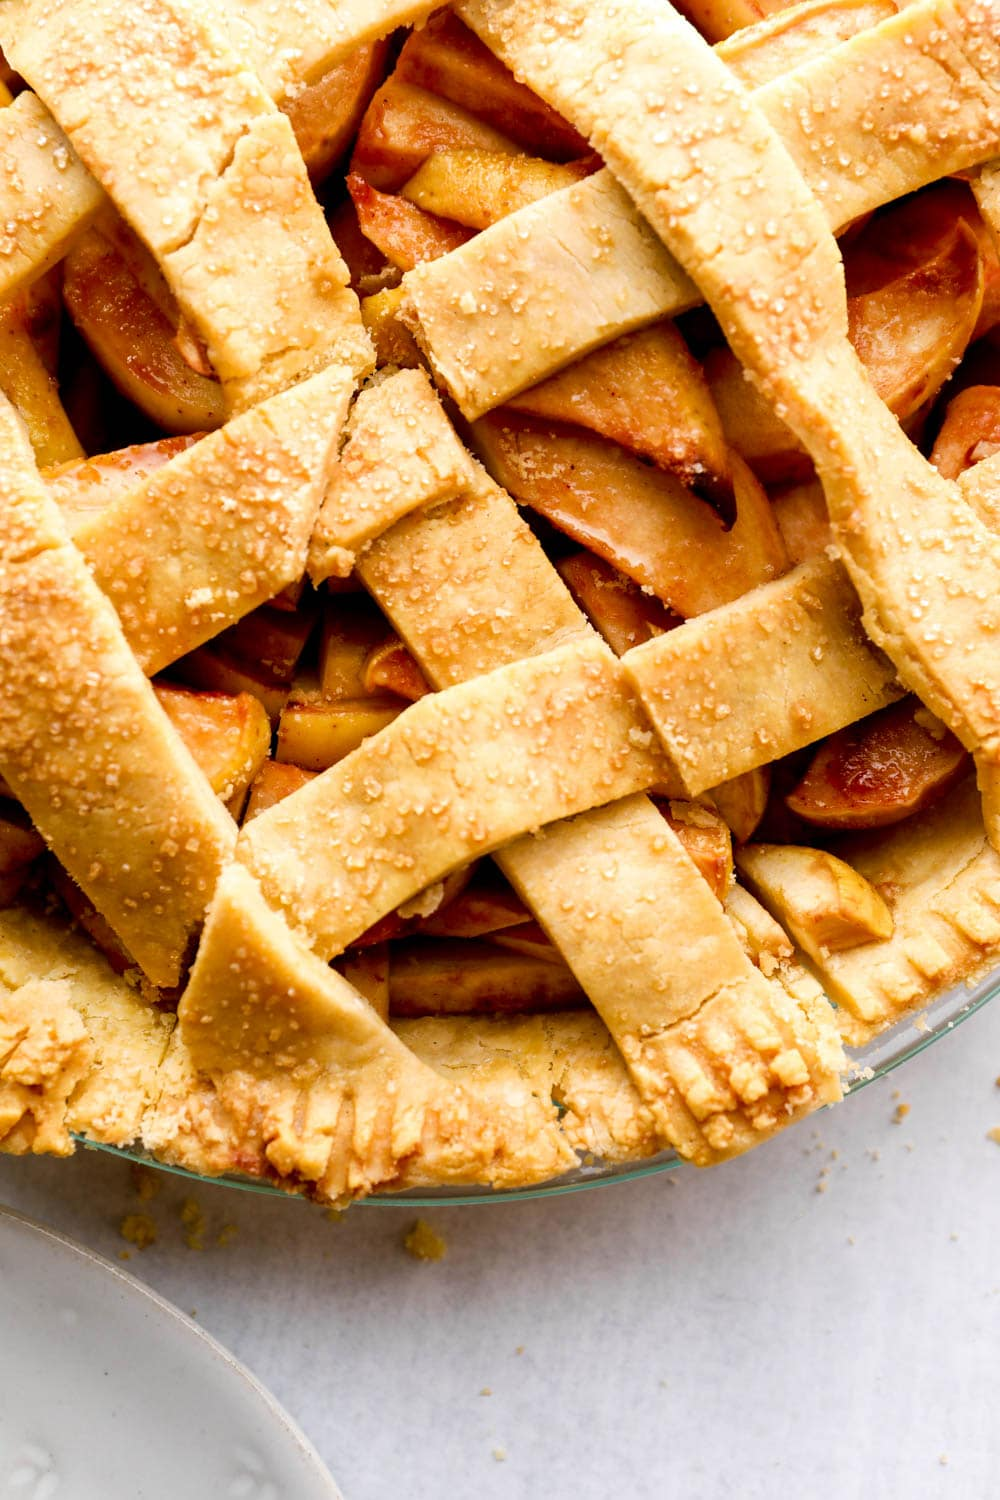 Gluten Free Apple Pie with a slice cut out.